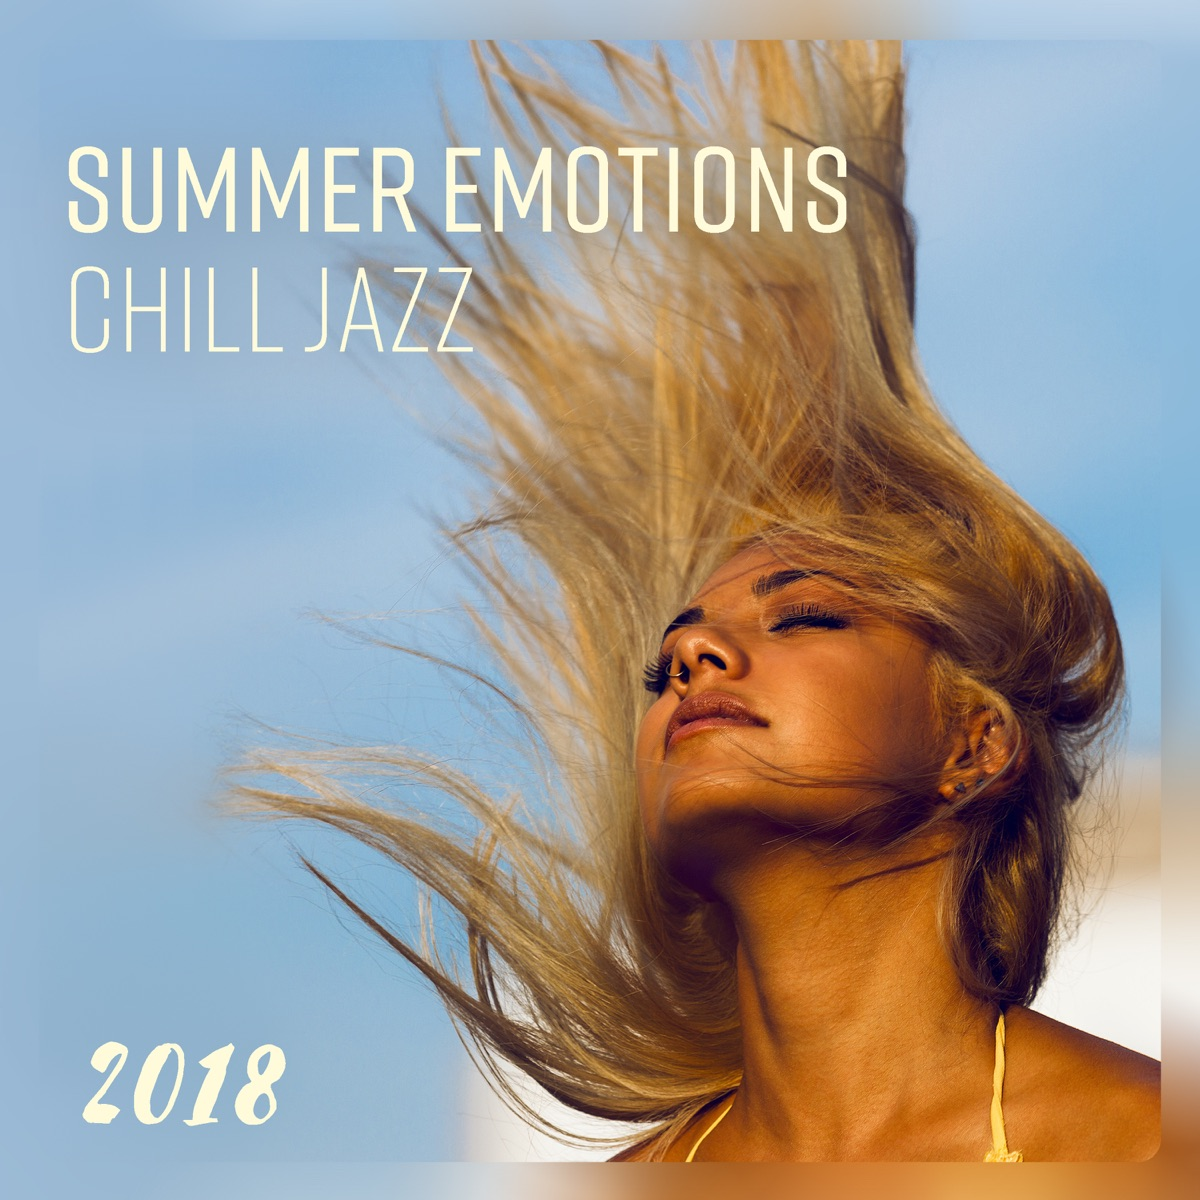 Summer Emotions Chill Jazz 2018 Album Cover By Smooth Jazz